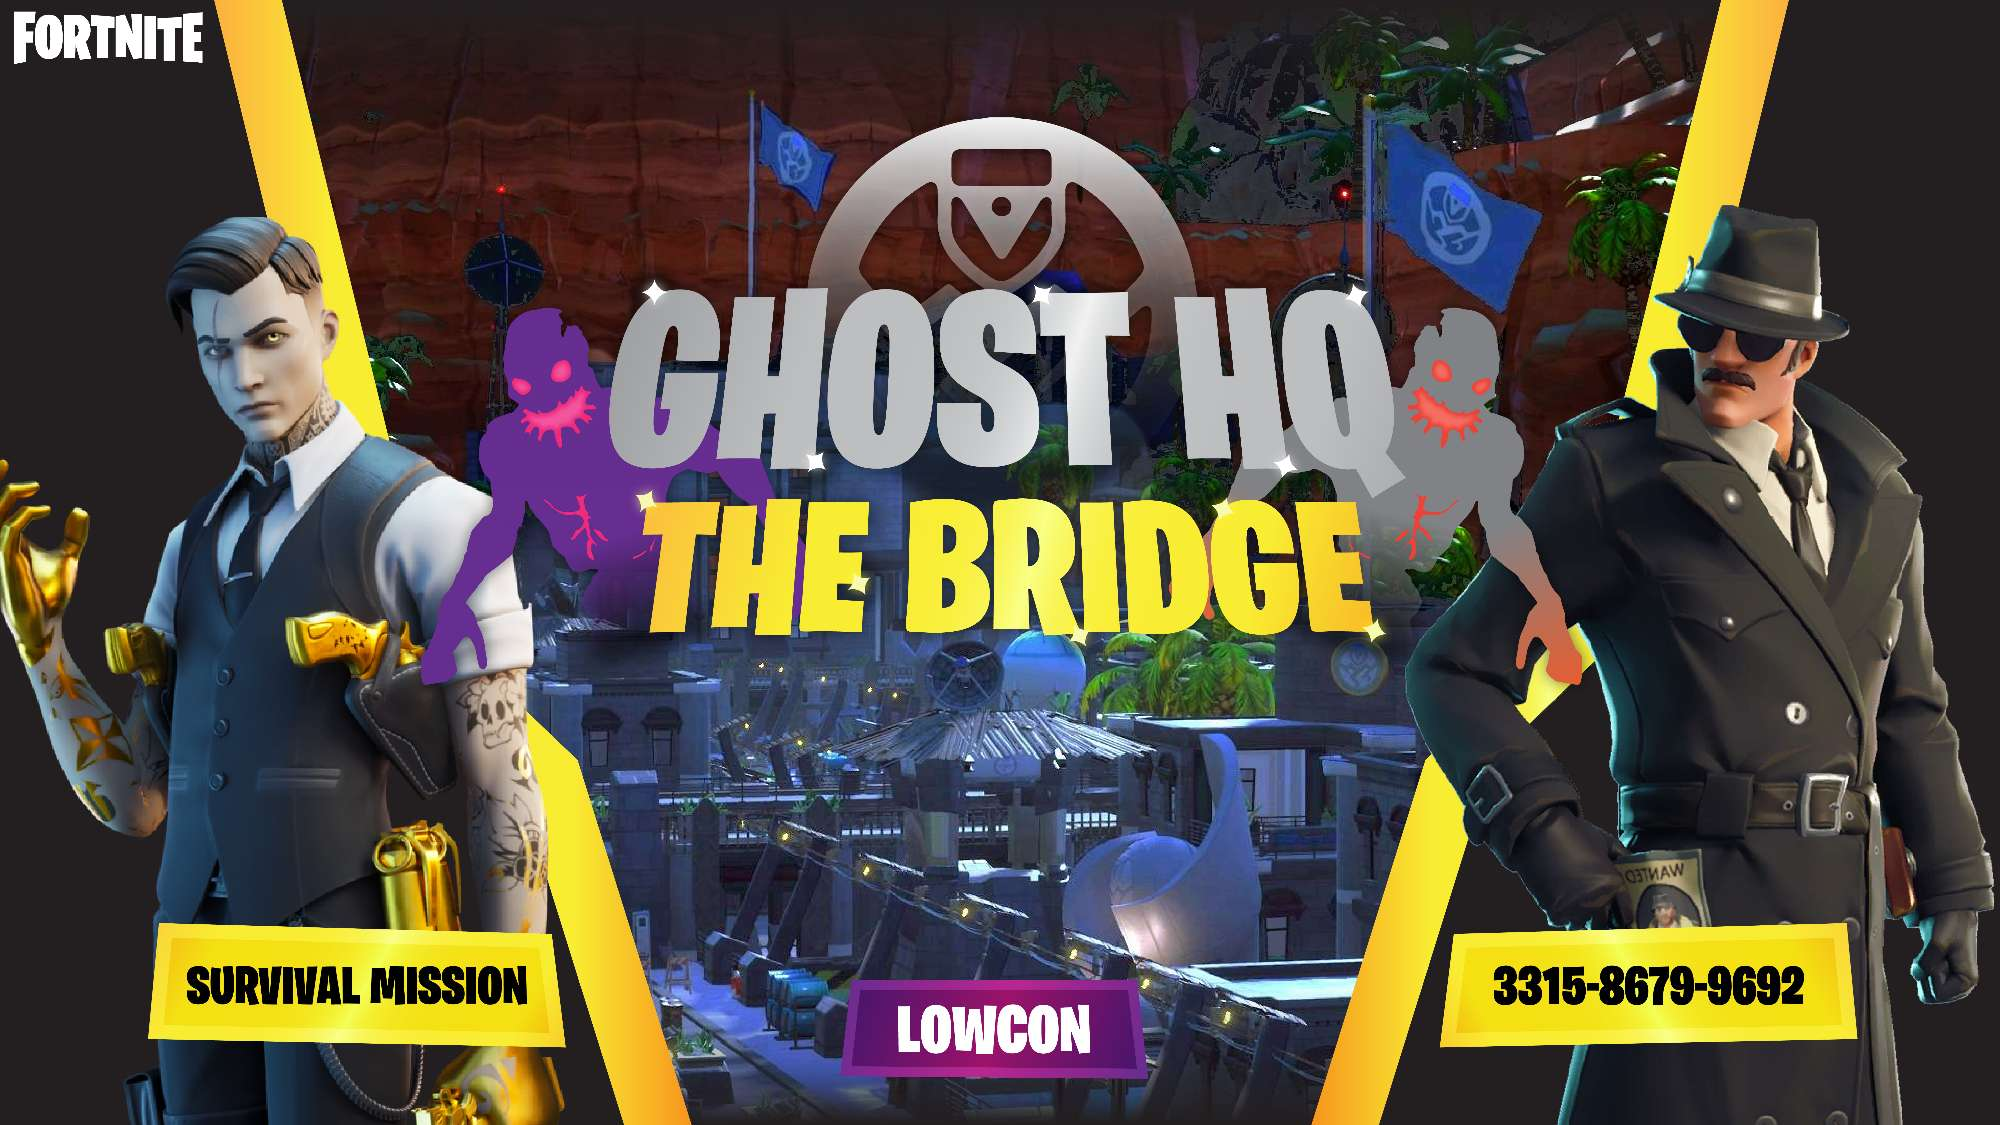 GHOST HQ: Survival Mission